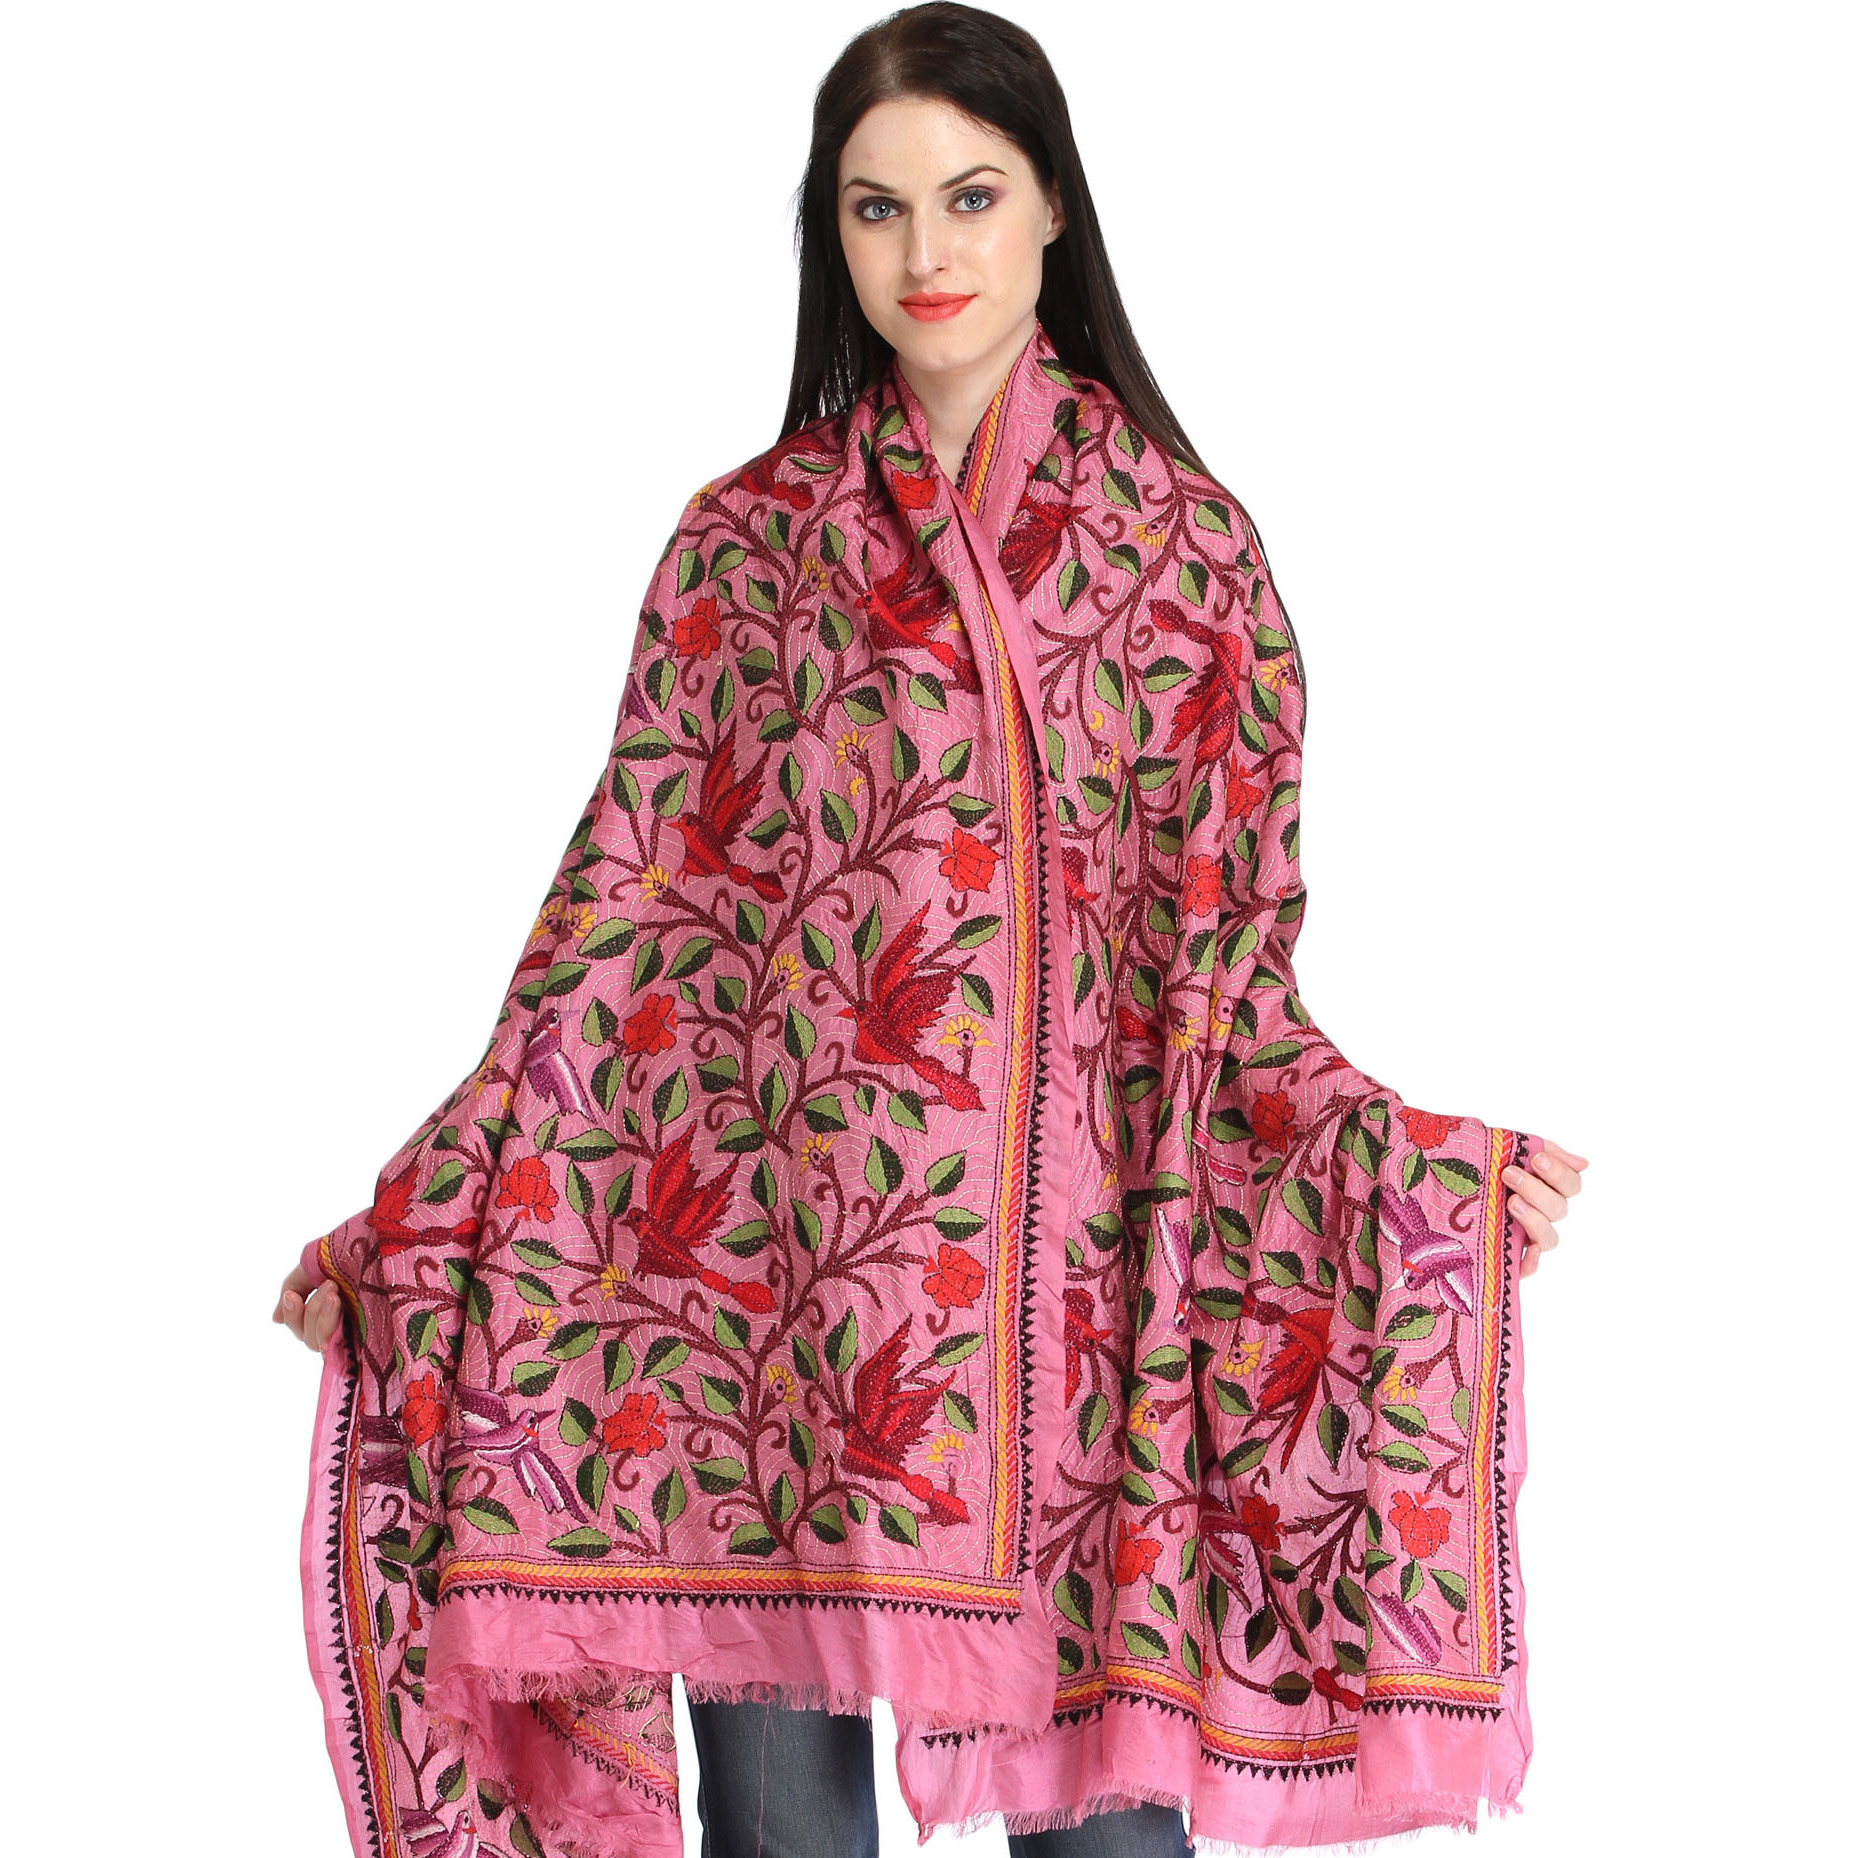 Aurora-Pink Kantha Dupatta from Kolkata with Hand-Embroidered Birds